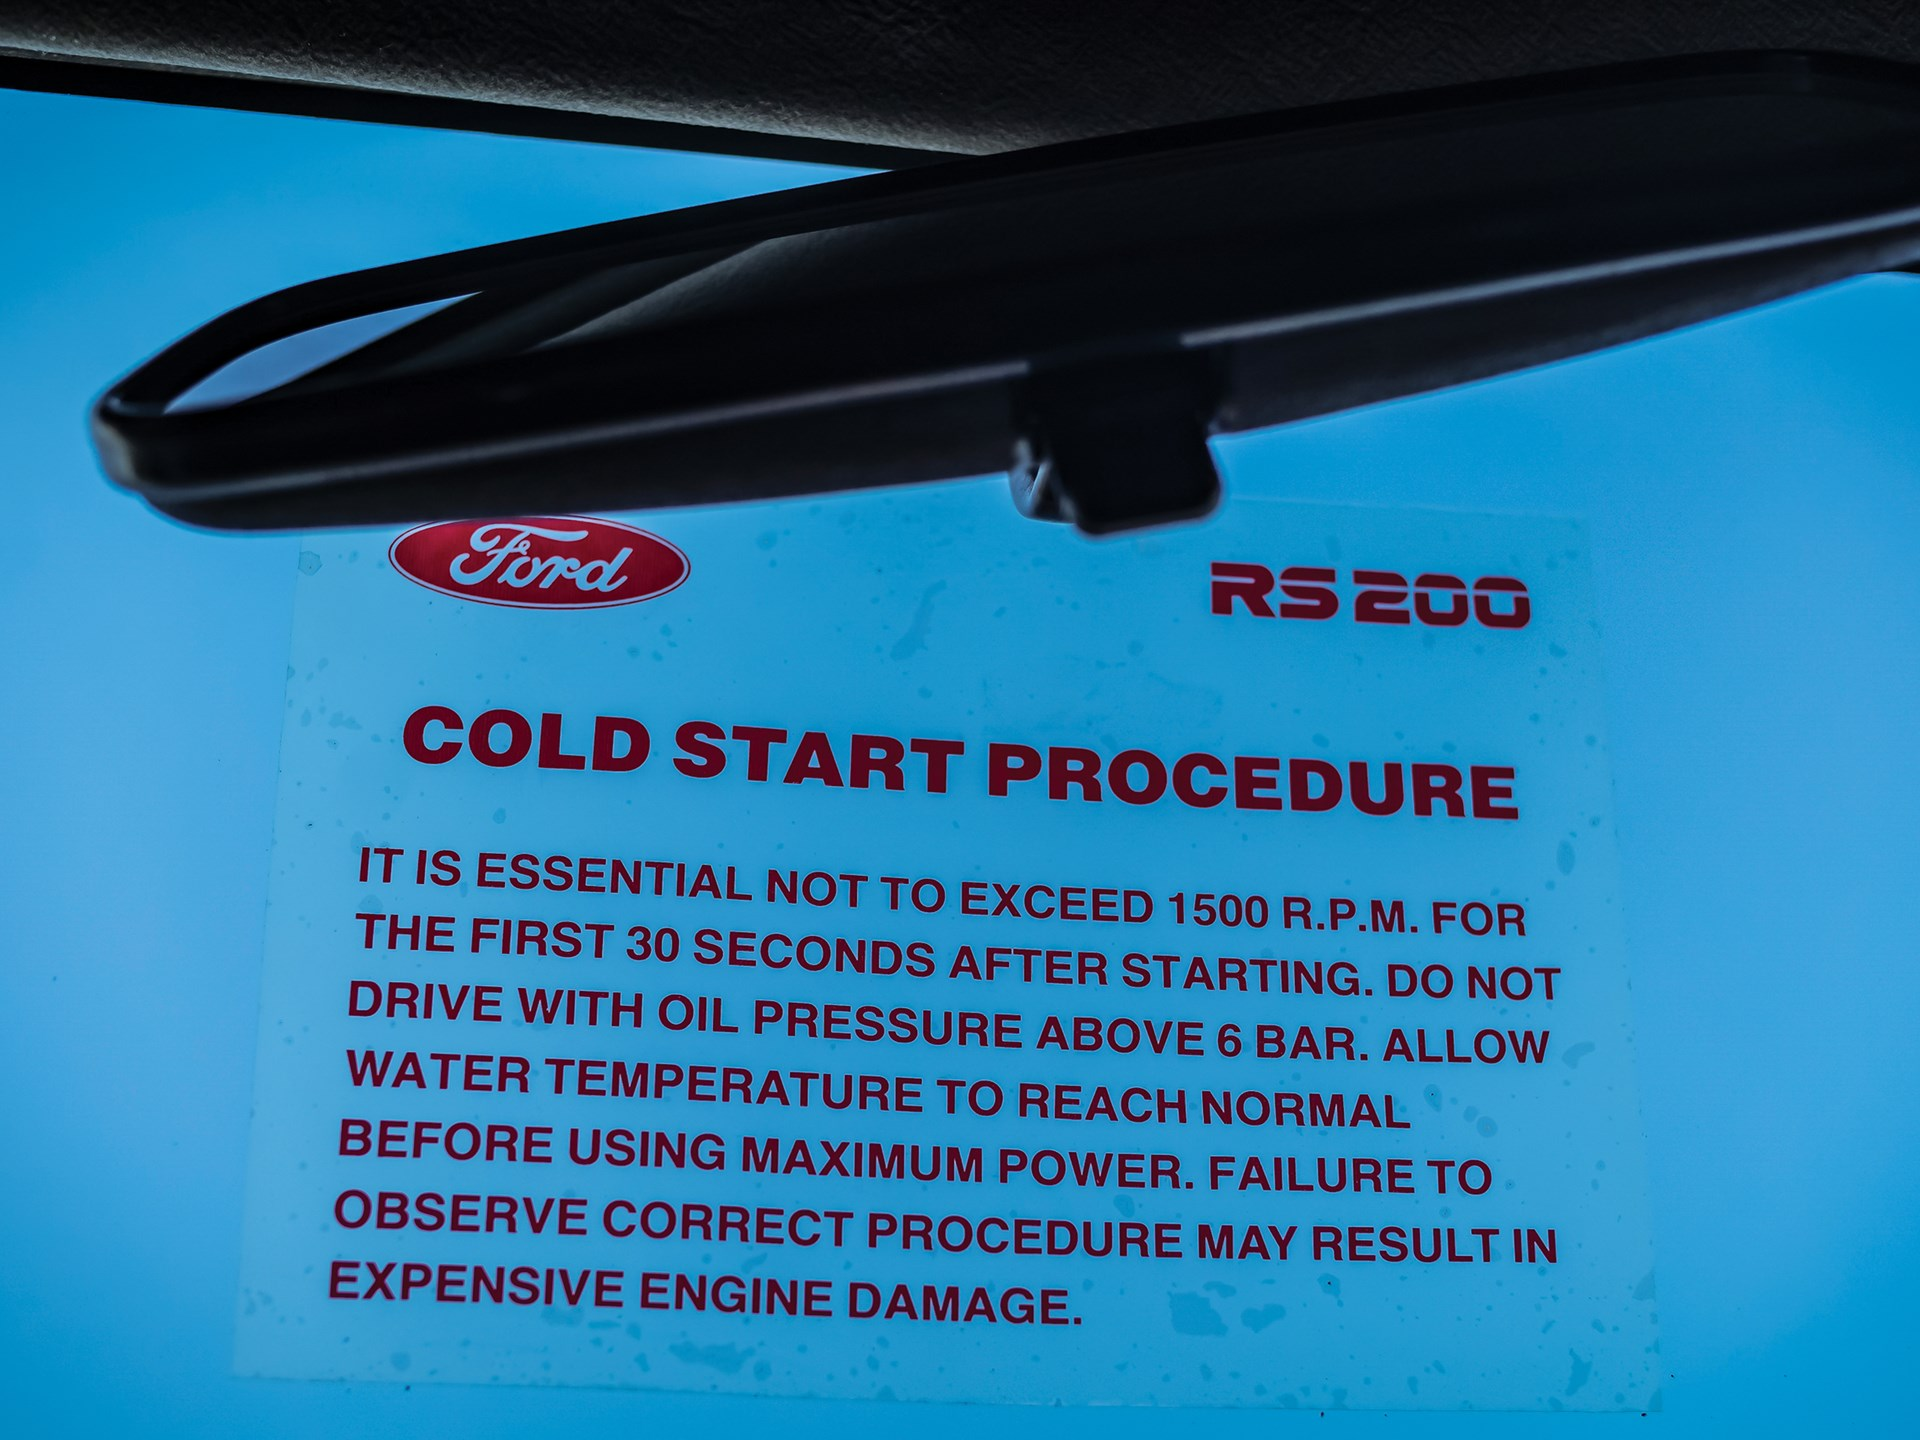 1986 Ford RS200 cold start warning